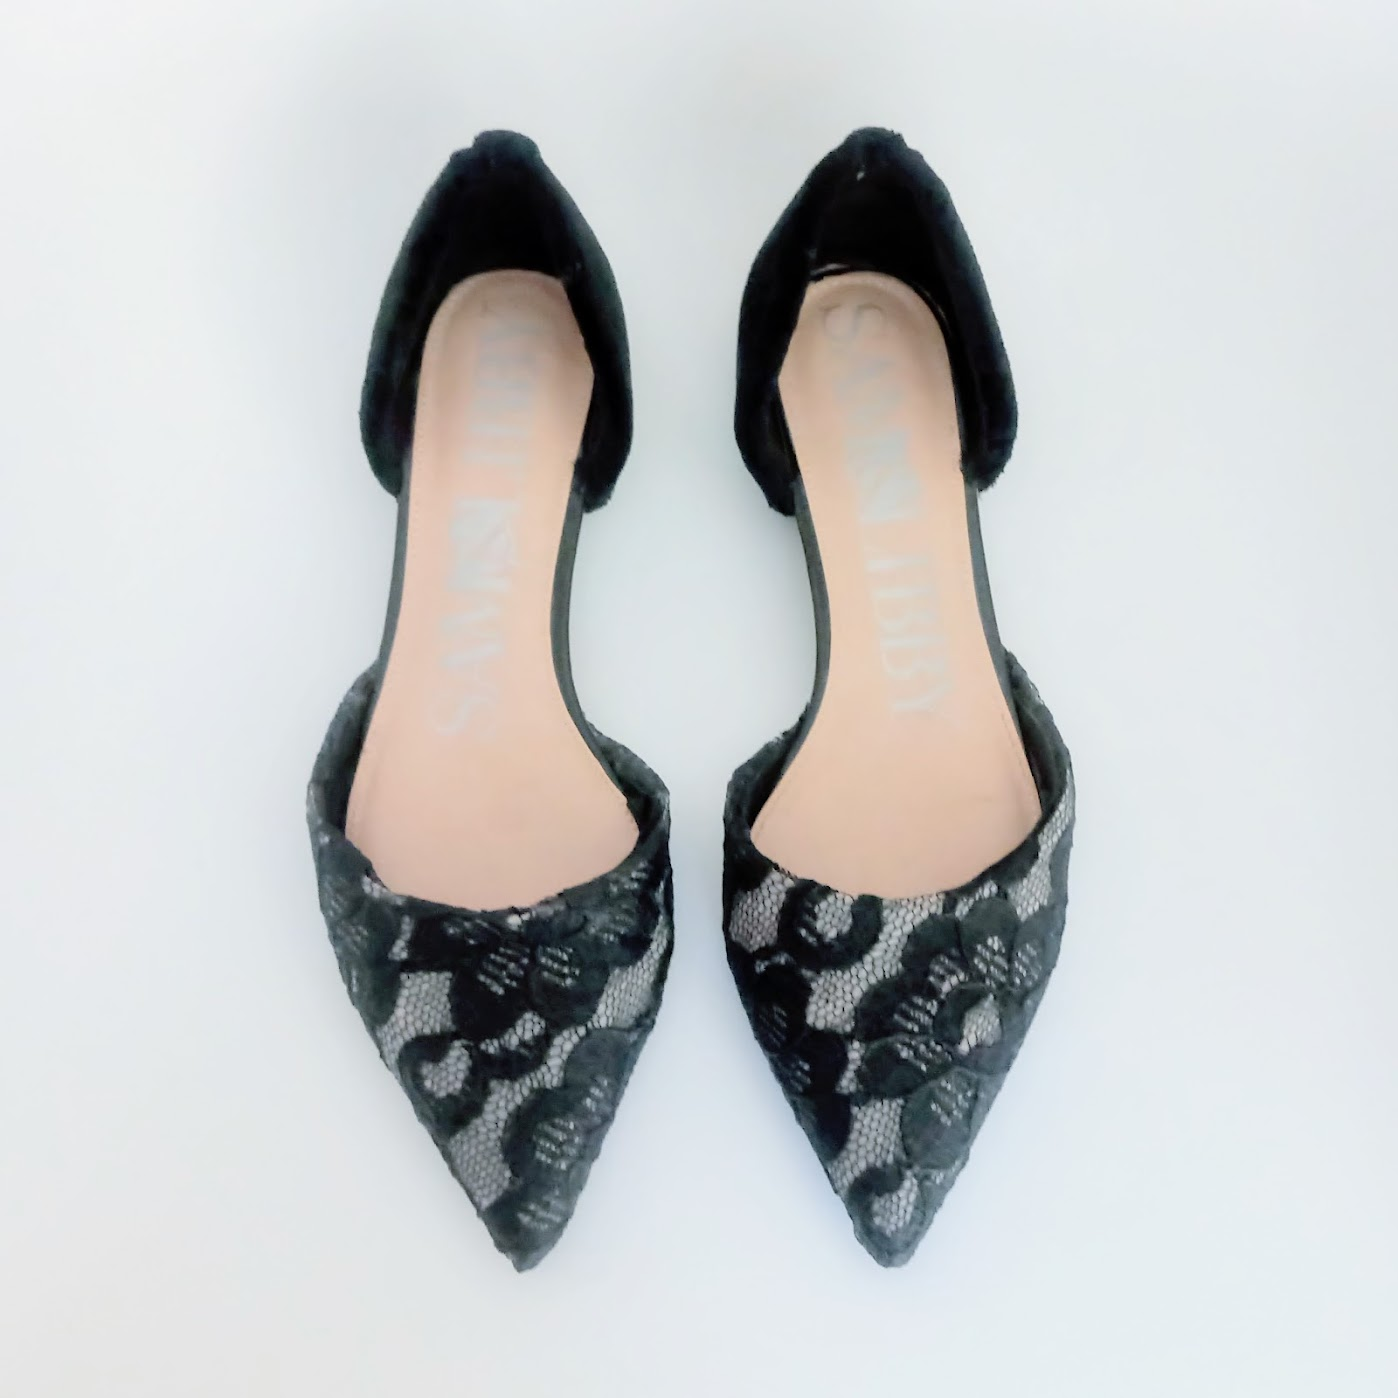 Flats Refashion with Lace and Velvet Remnants - DIY Fashion Accessories | fafafoom.com